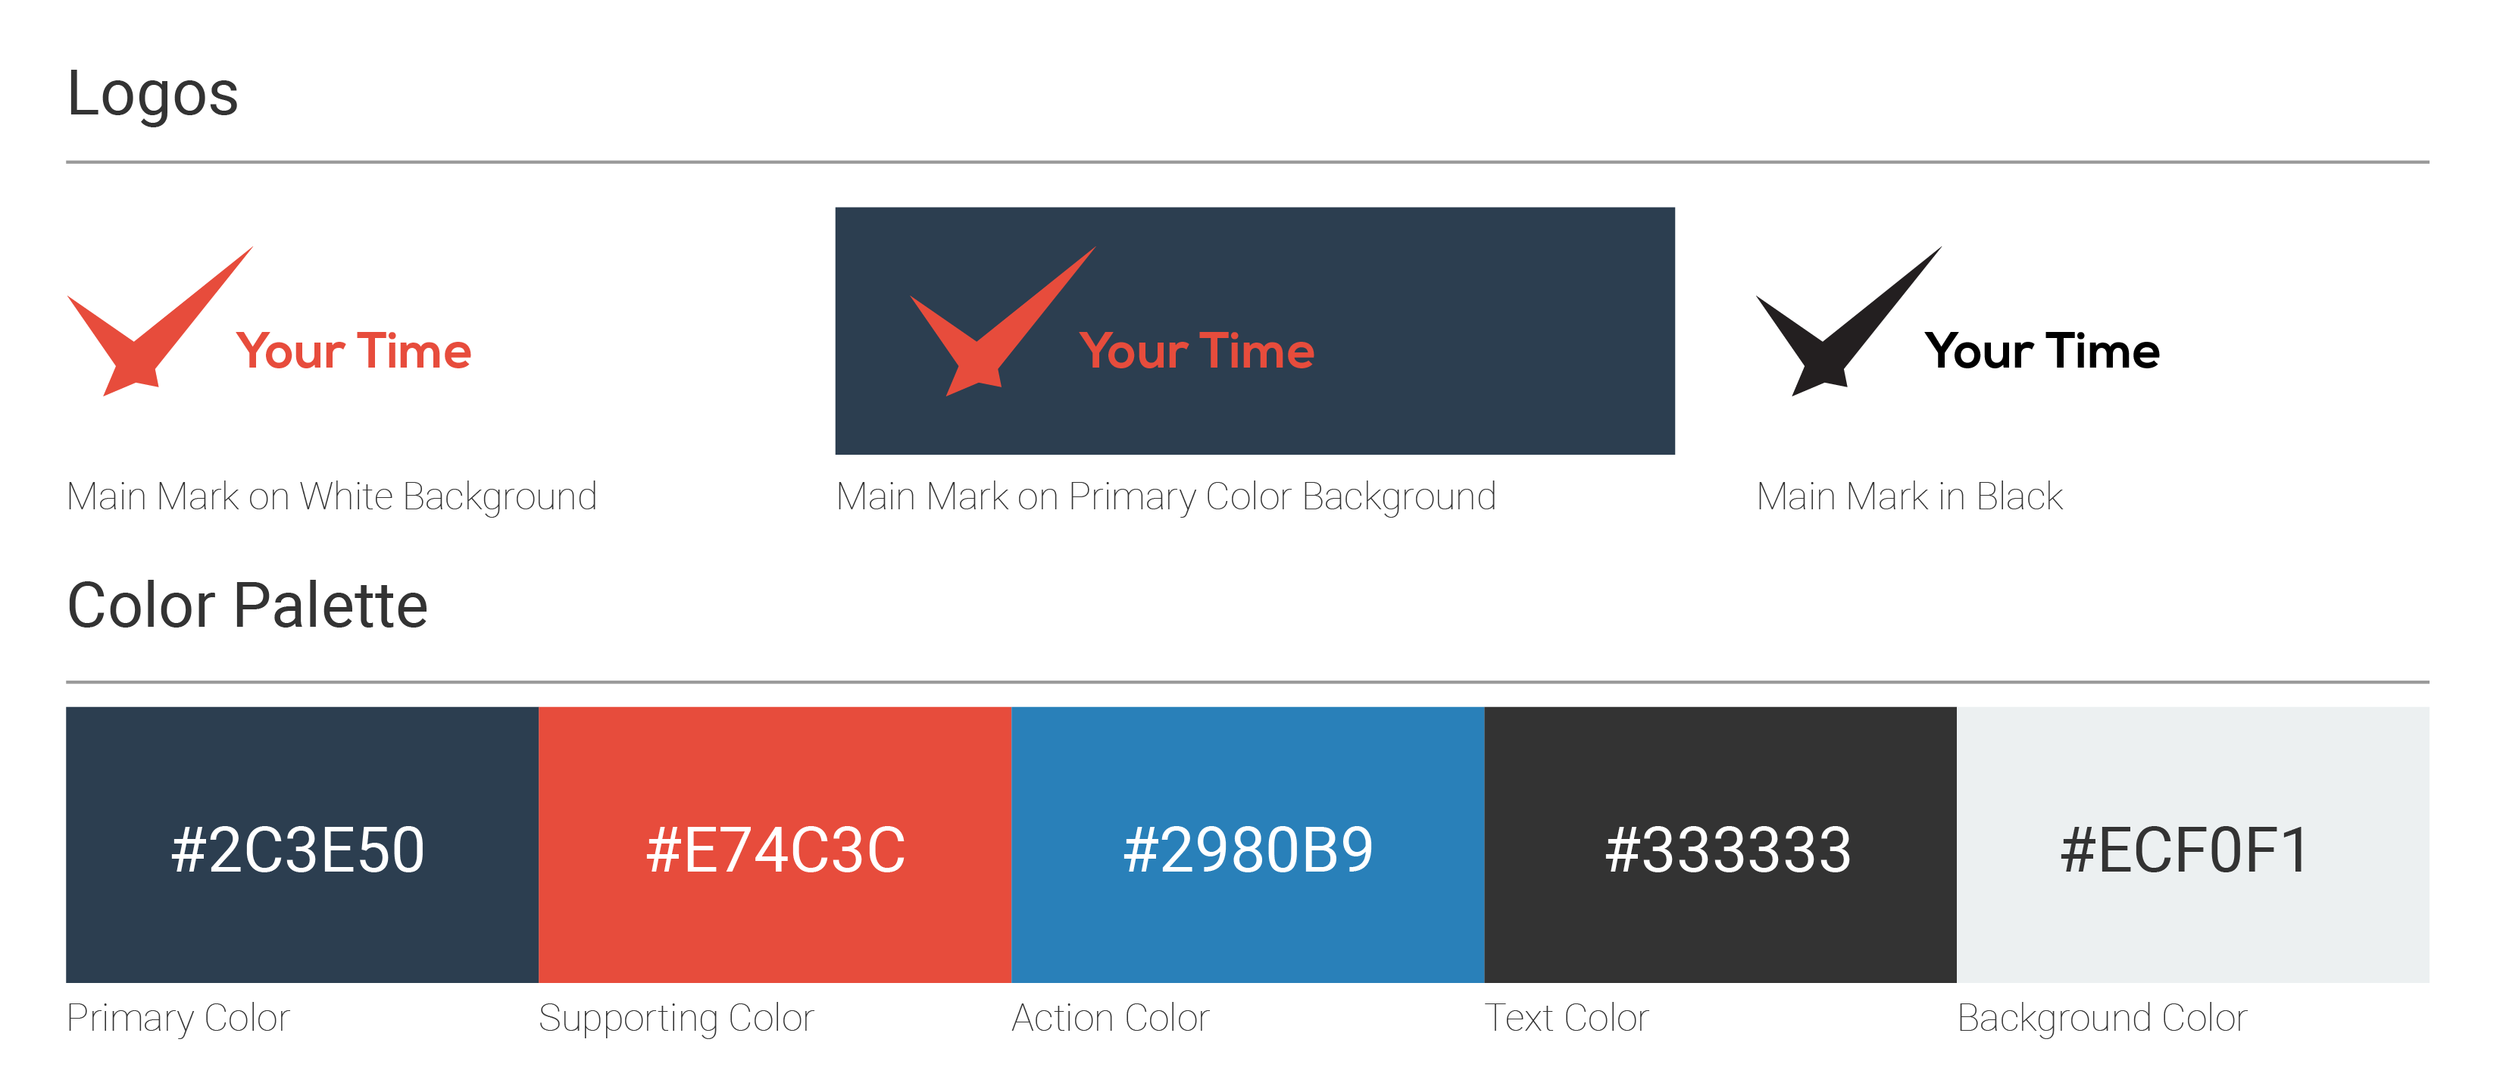 Logo and Color Palette